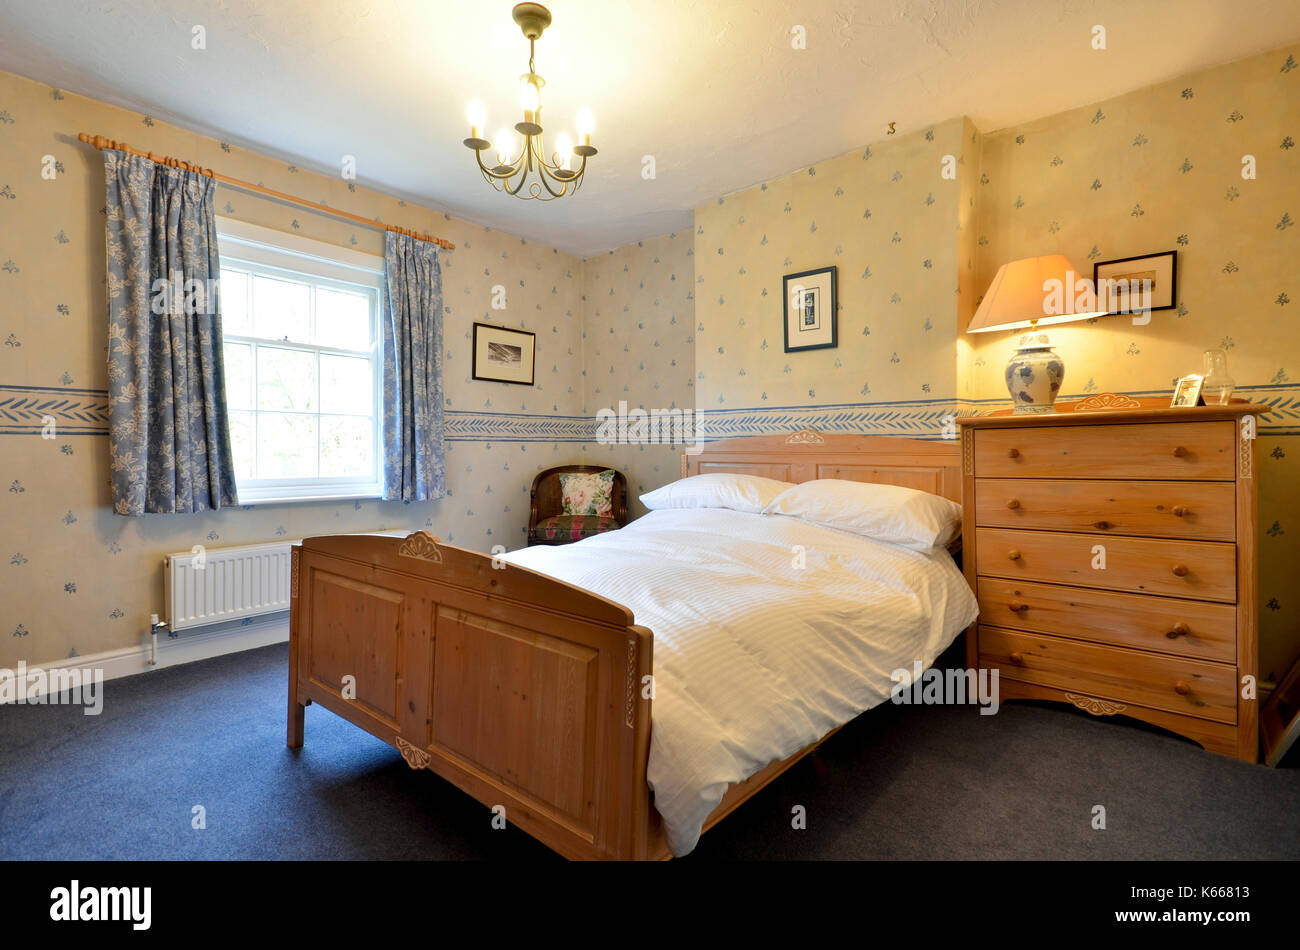 Guest Bedroom In Country Cottage With Pine Furniture